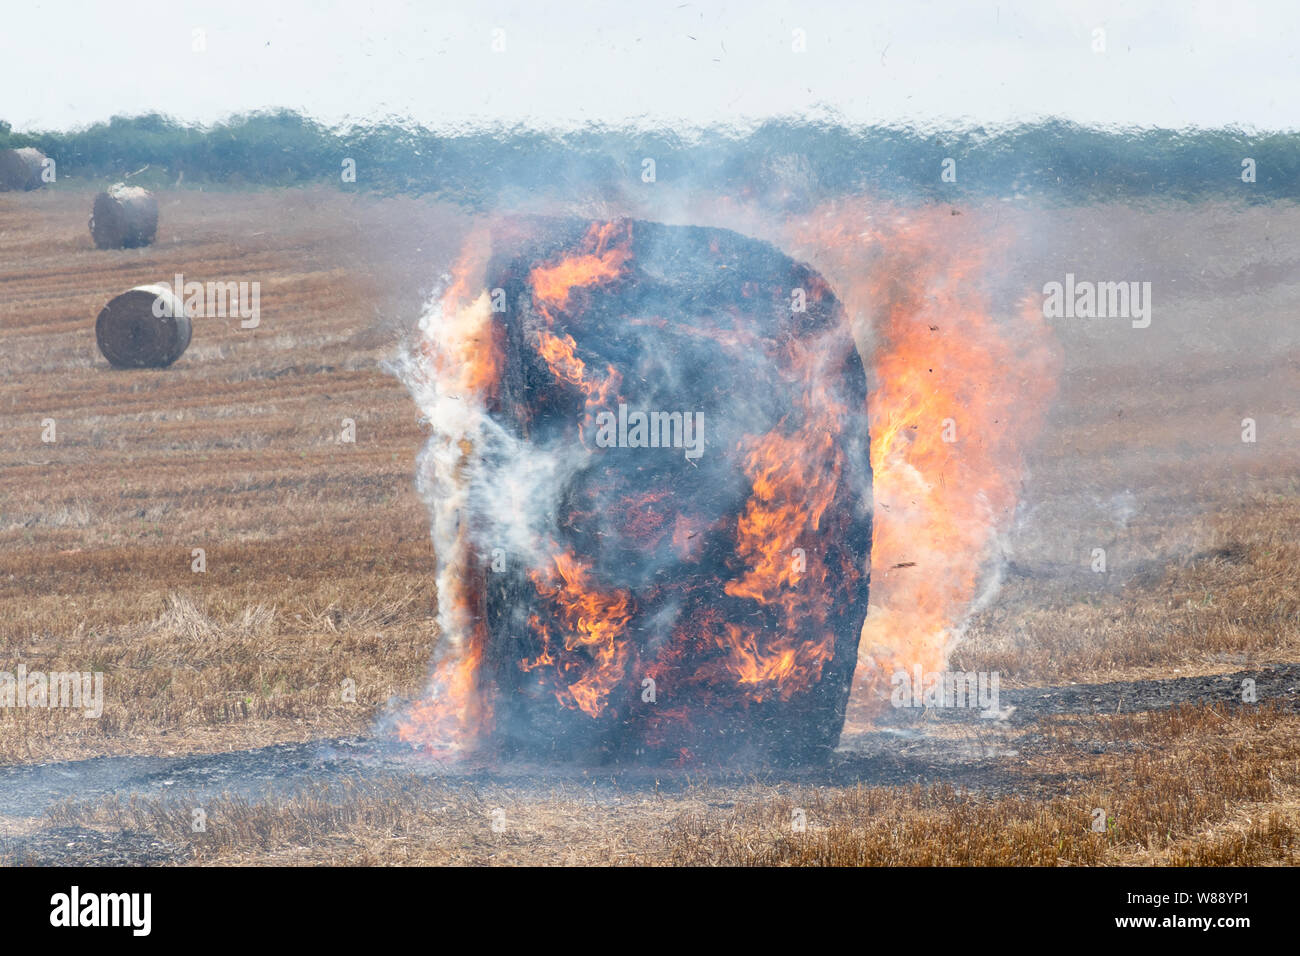 burning-linseed-straw-bales-in-a-hampshire-field-during-august-uk-W88YP1.jpg